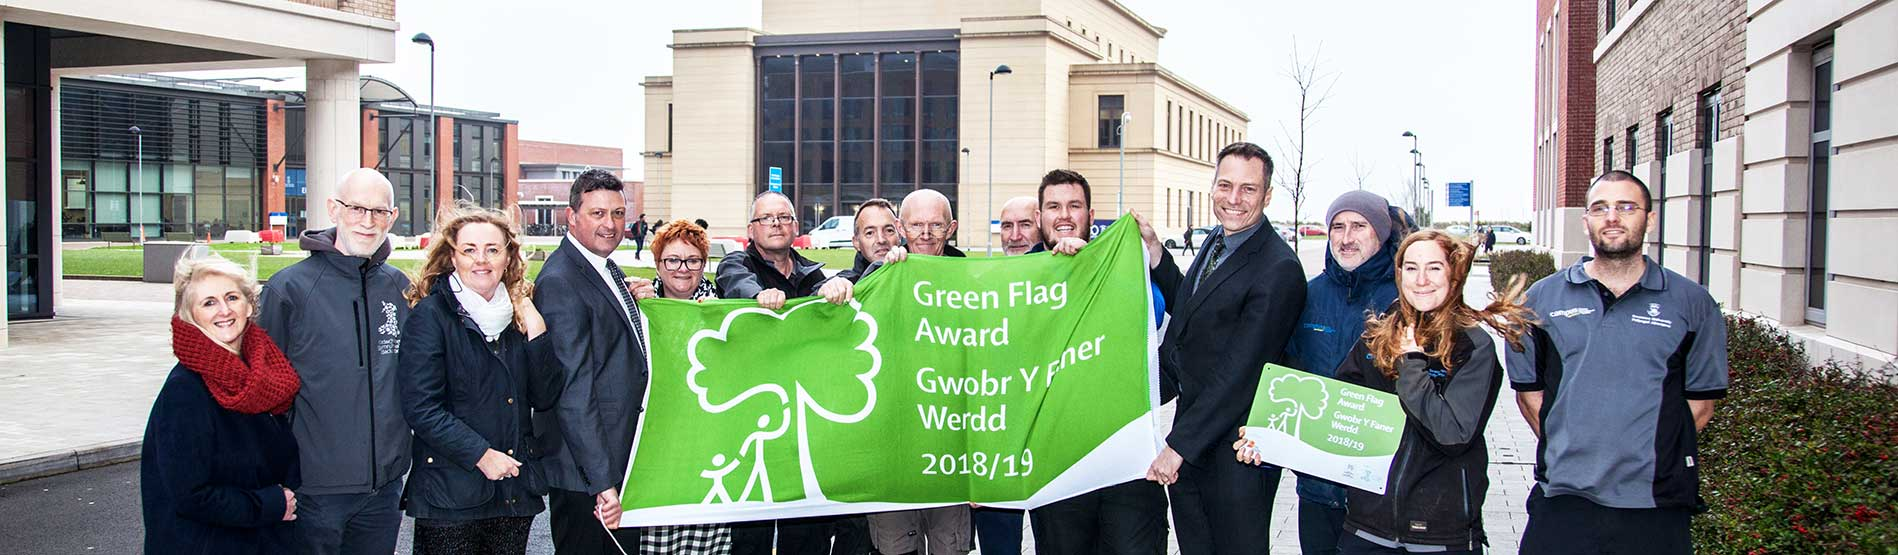 Grounds team members flying the Green Flag at the Bay Campus